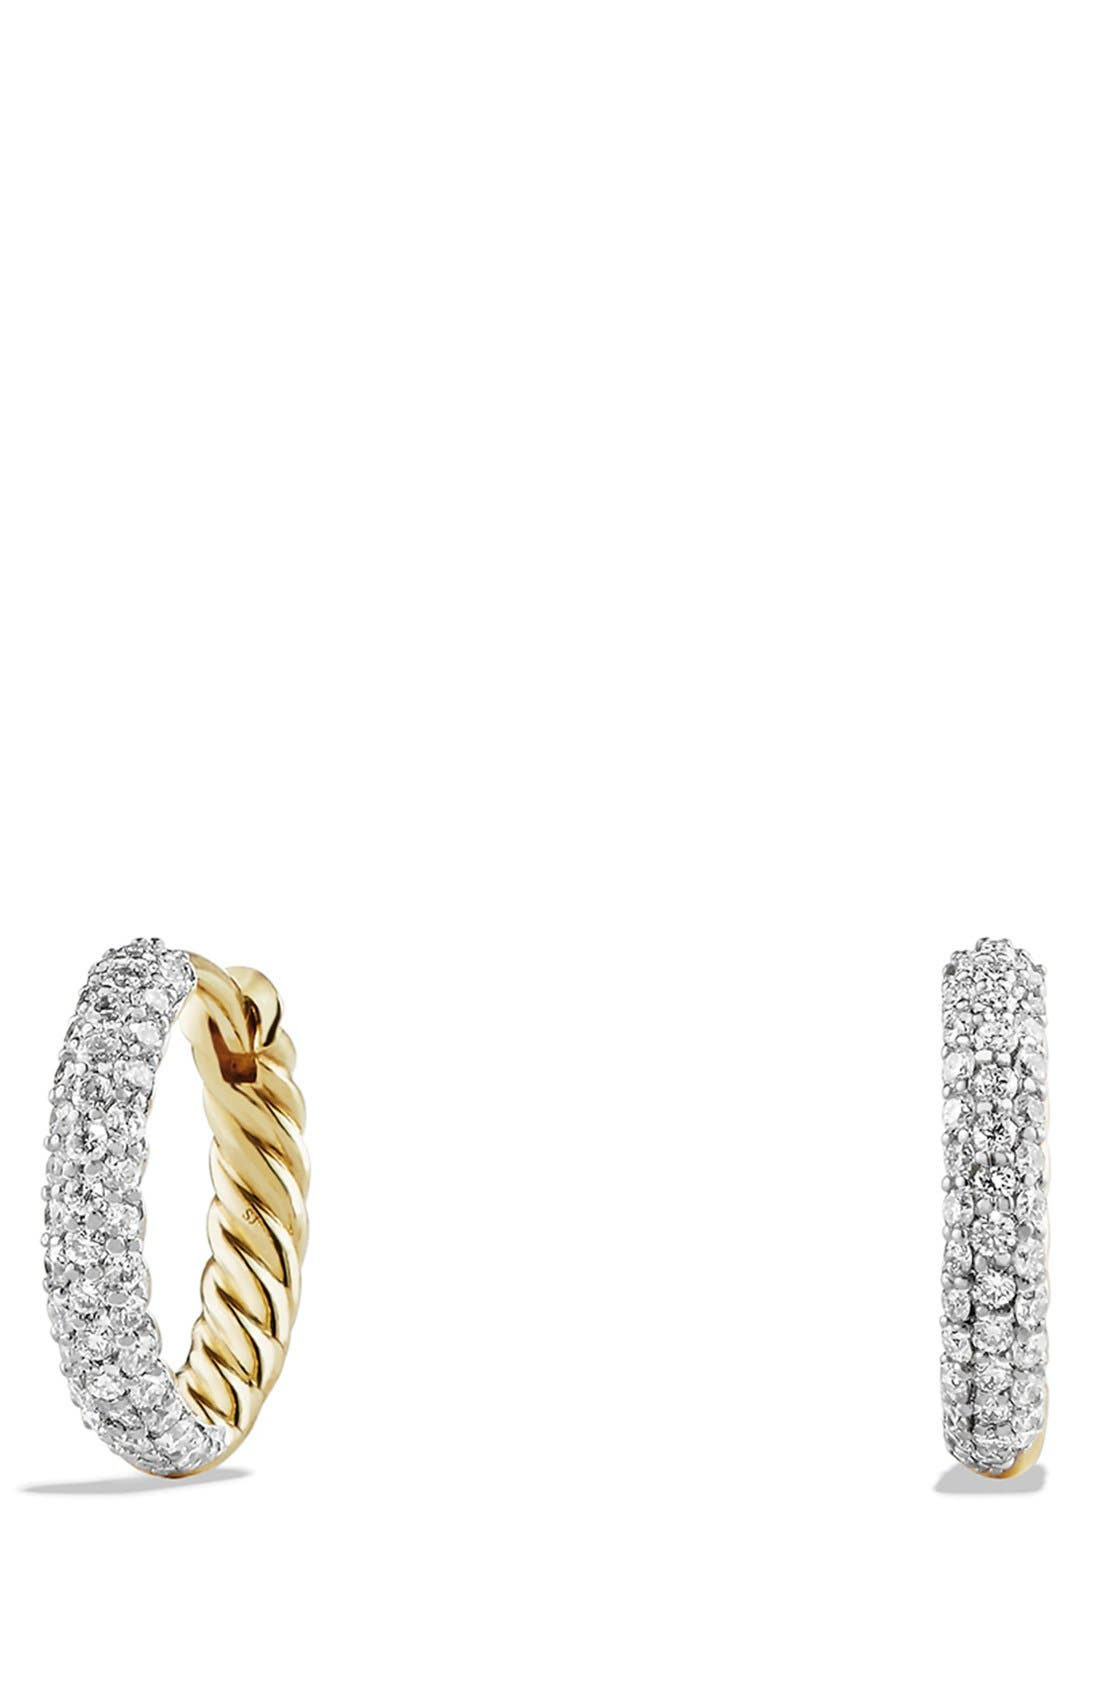 DAVID YURMAN Petite Pavé Earrings with Diamonds in 18K Gold